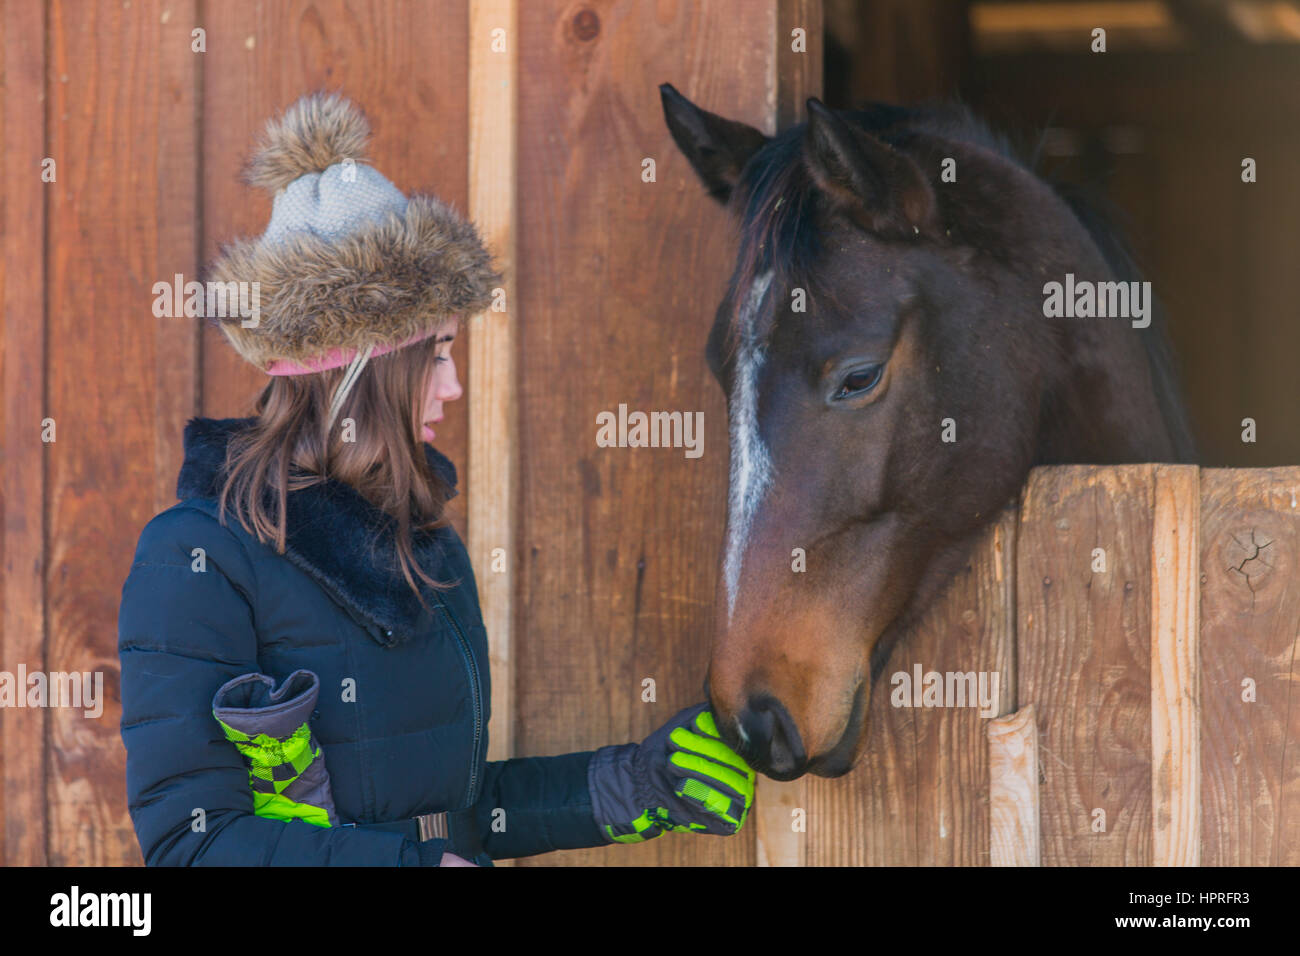 Girls and horses - Stock Image